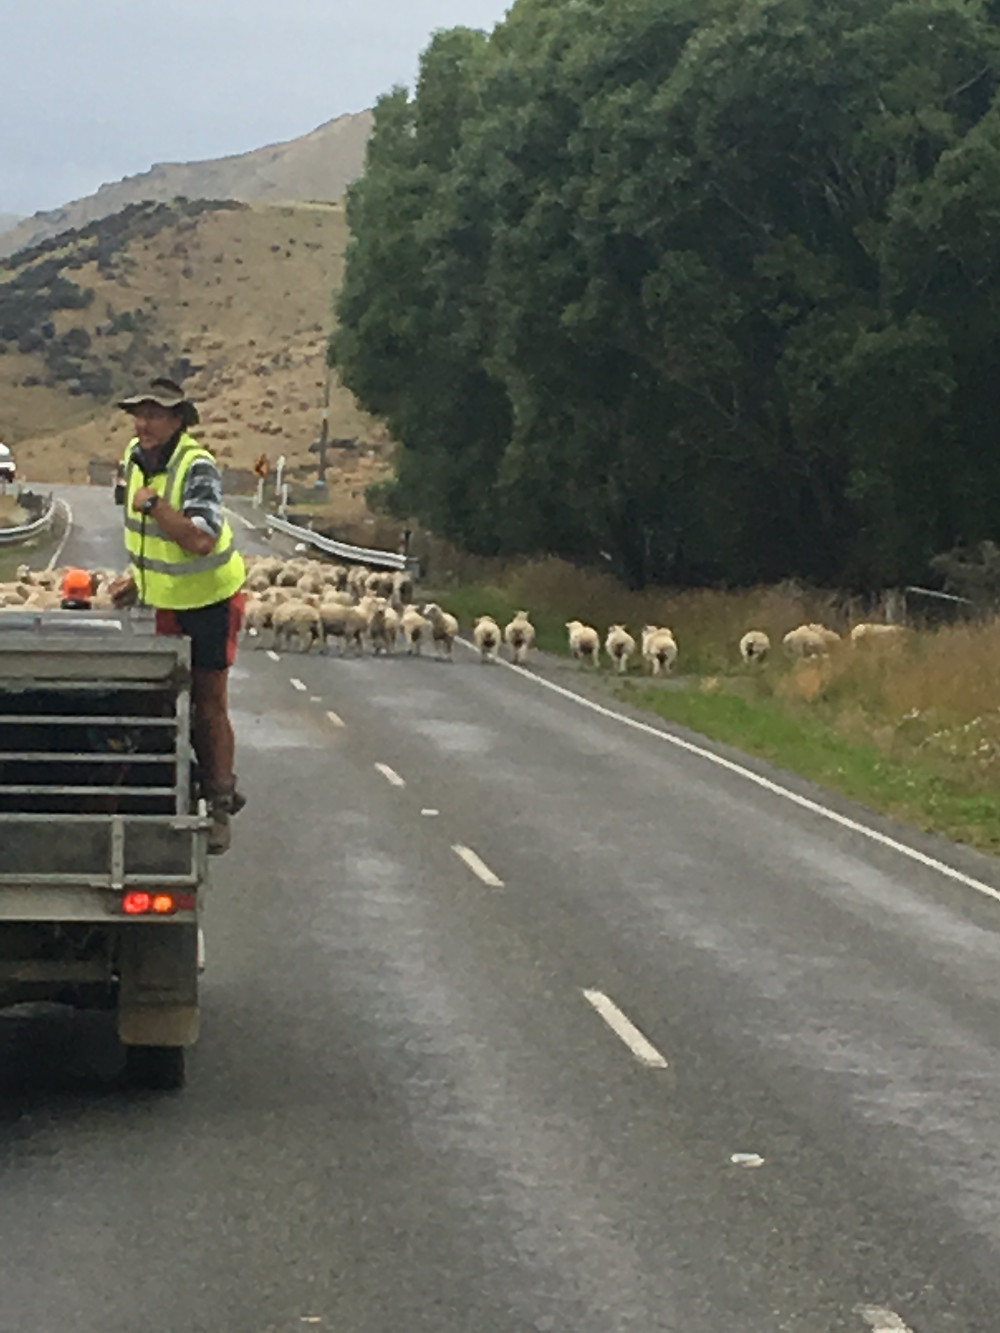 The Sheep blocked the road